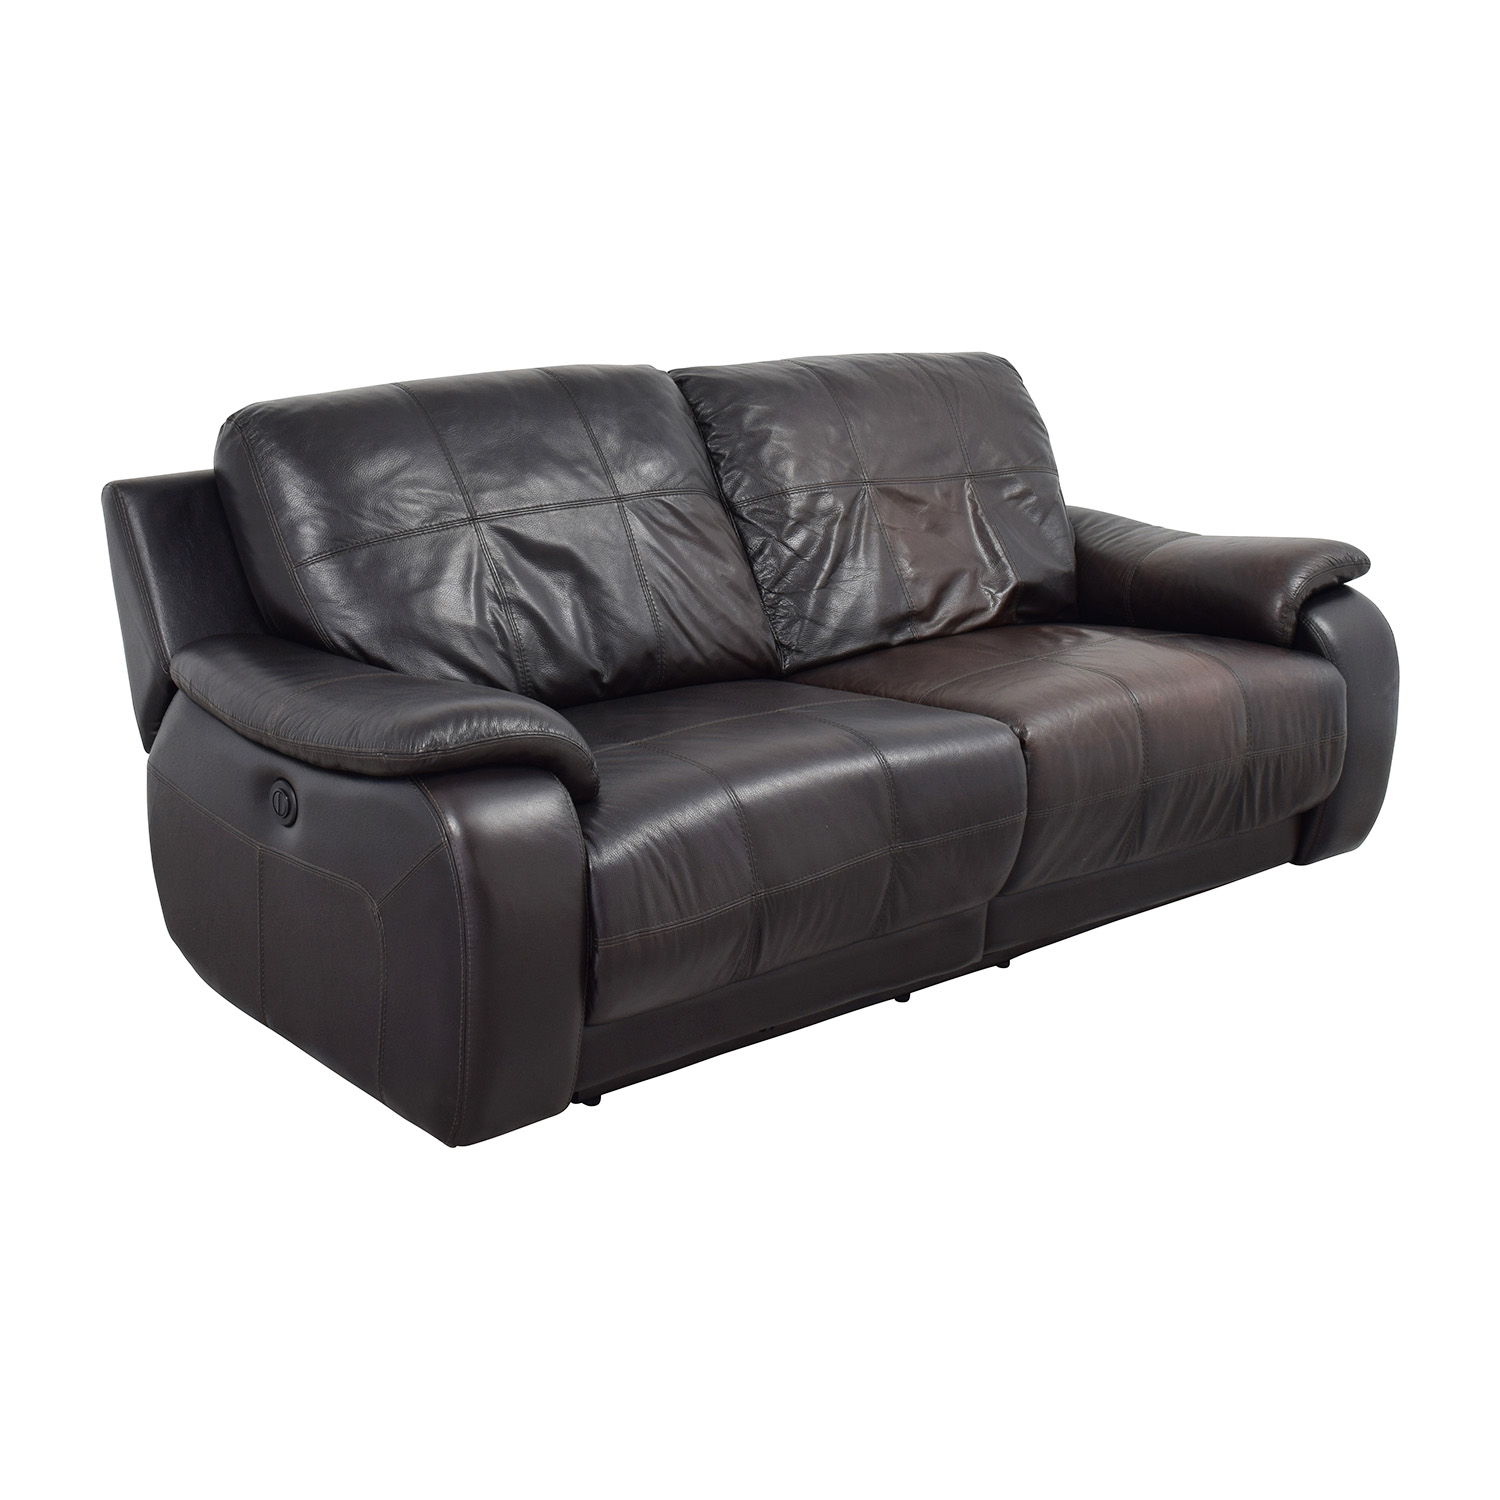 ... Raymour And Flanigan Raymour And Flanigan Espresso Leather Power Recliner  Sofa On Sale ...